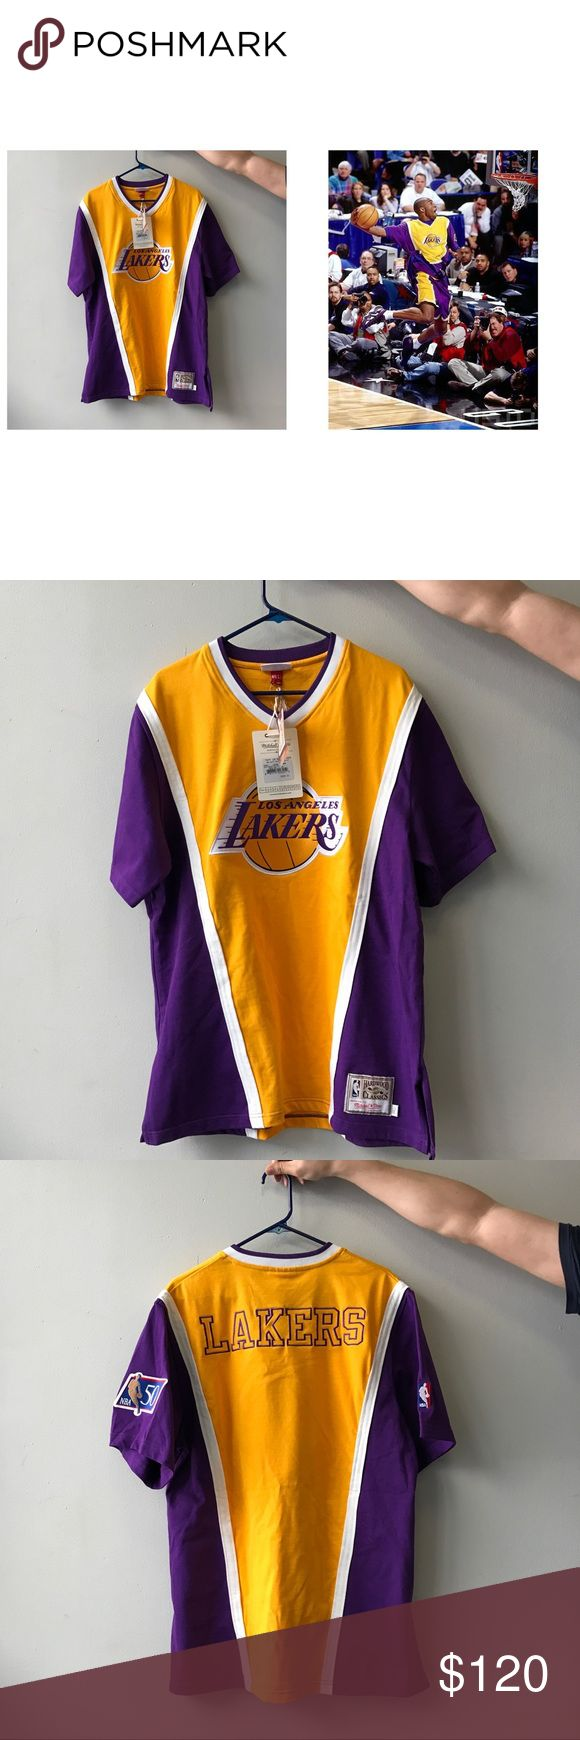 Los Angeles Lakers authentic shooting shirt. Size: 44 Large. Brand new! 🌟Kobe wore this T-shirt on 1997 All-star Slam Dunk Contest.🌟Wear the Lakers with a classic look in this 1996 Authentic Shooting Shirt from Mitchell and Ness. Features a tackle twill LA Lakers Primary logo on the front with the Lakers team name embroidered on the back. Made of 60% Cotton and 49% Polyester. 🌟Bought from lakersstore.com. I bought a wrong size for my family so I want to sell this. Mitchell & Ness Suits…